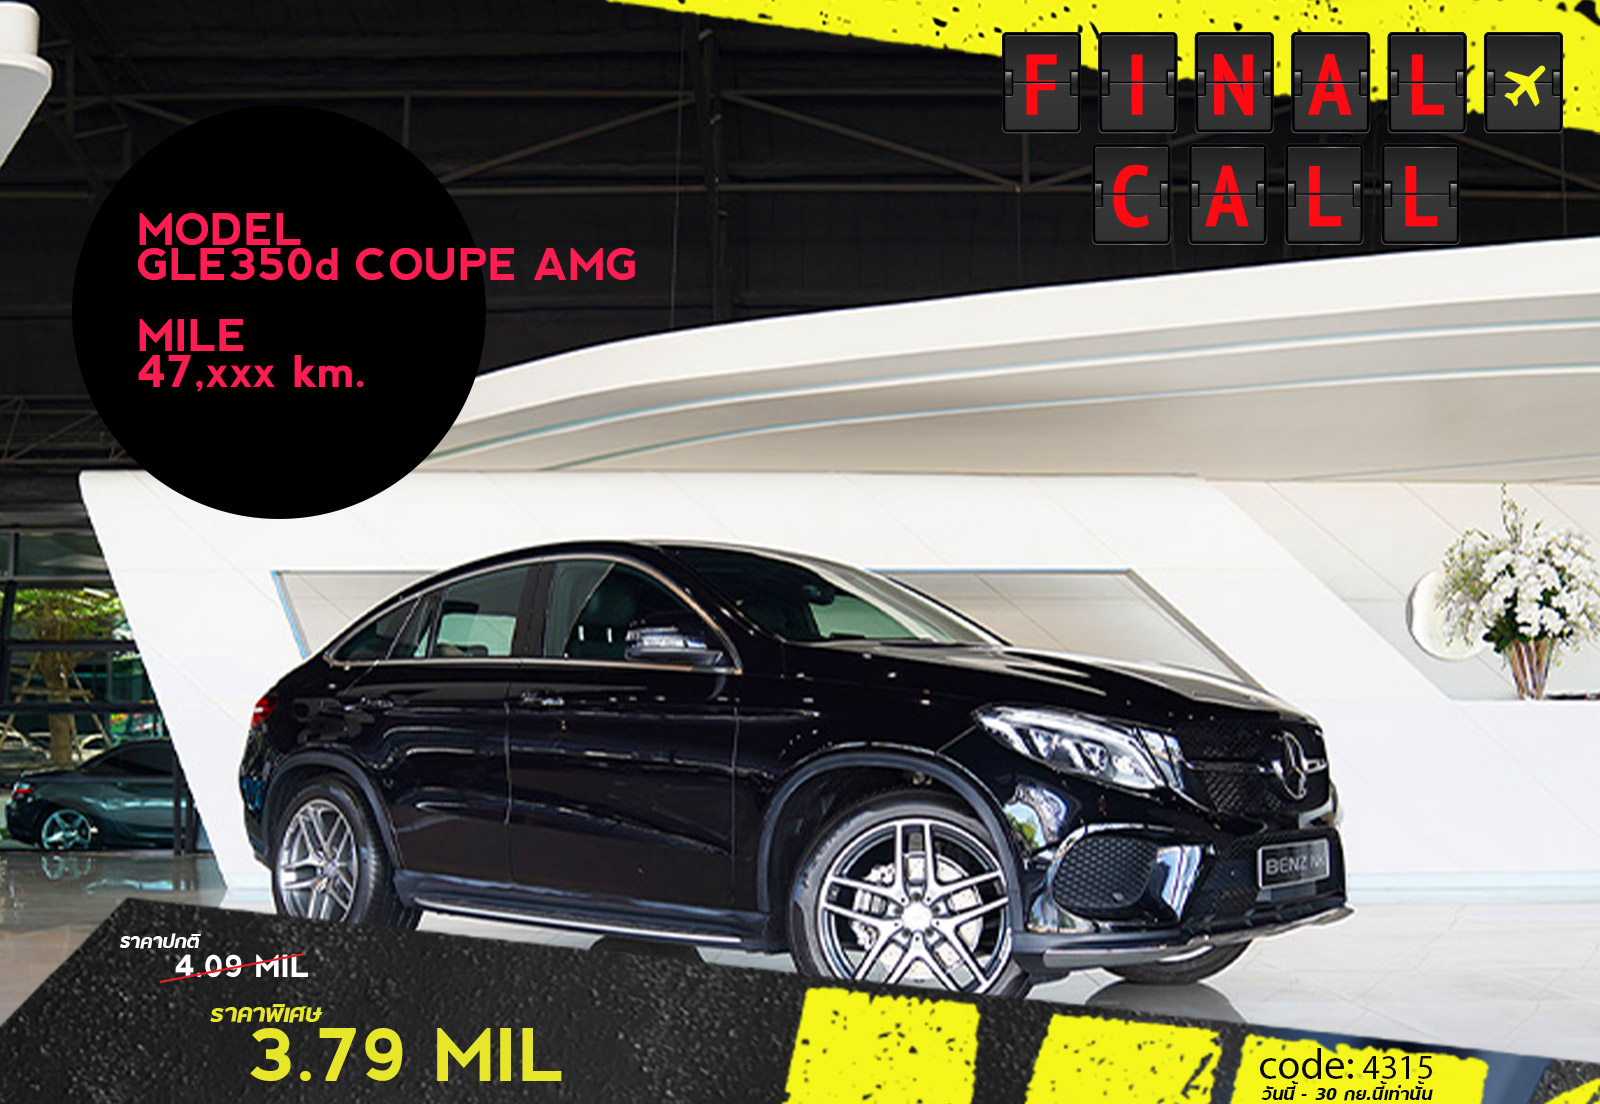 GLE350d Coupe AMG Mercedes Benz